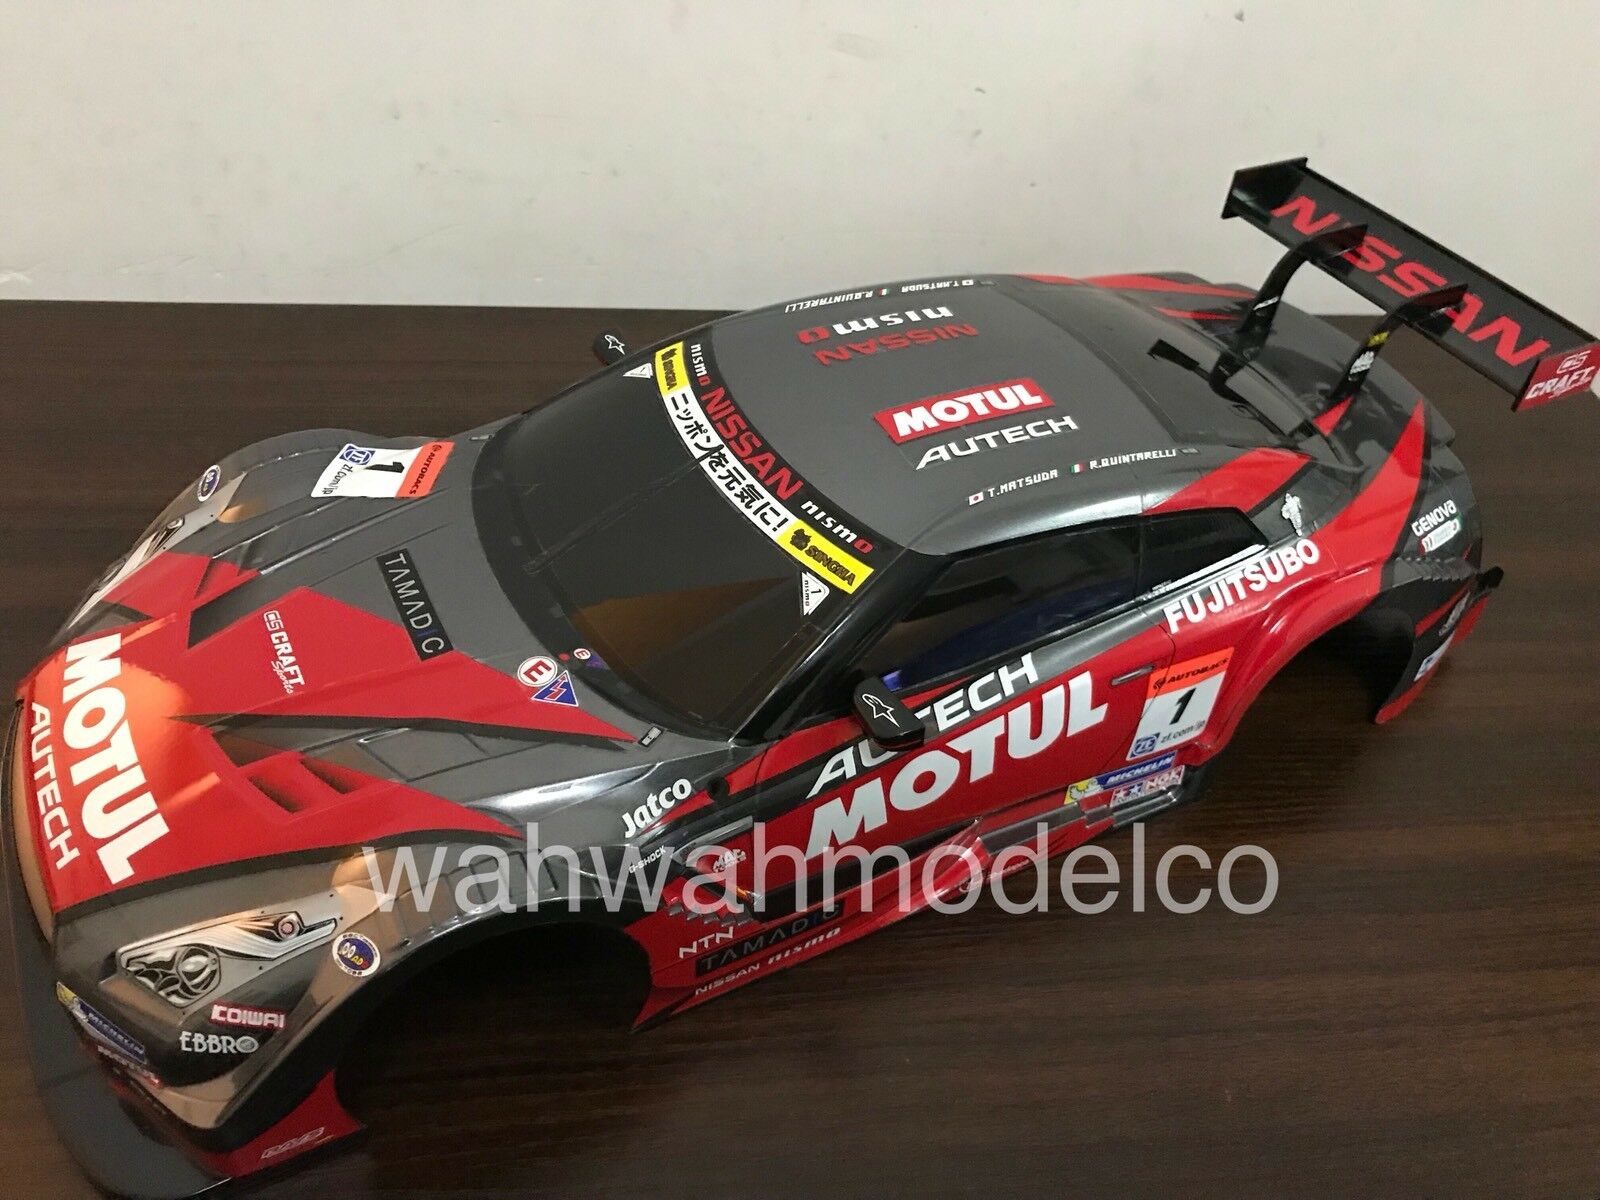 Tamiya 1/10 RC Body Set Motul Autech GT-R  Assembled Body for 57892 58625 51584